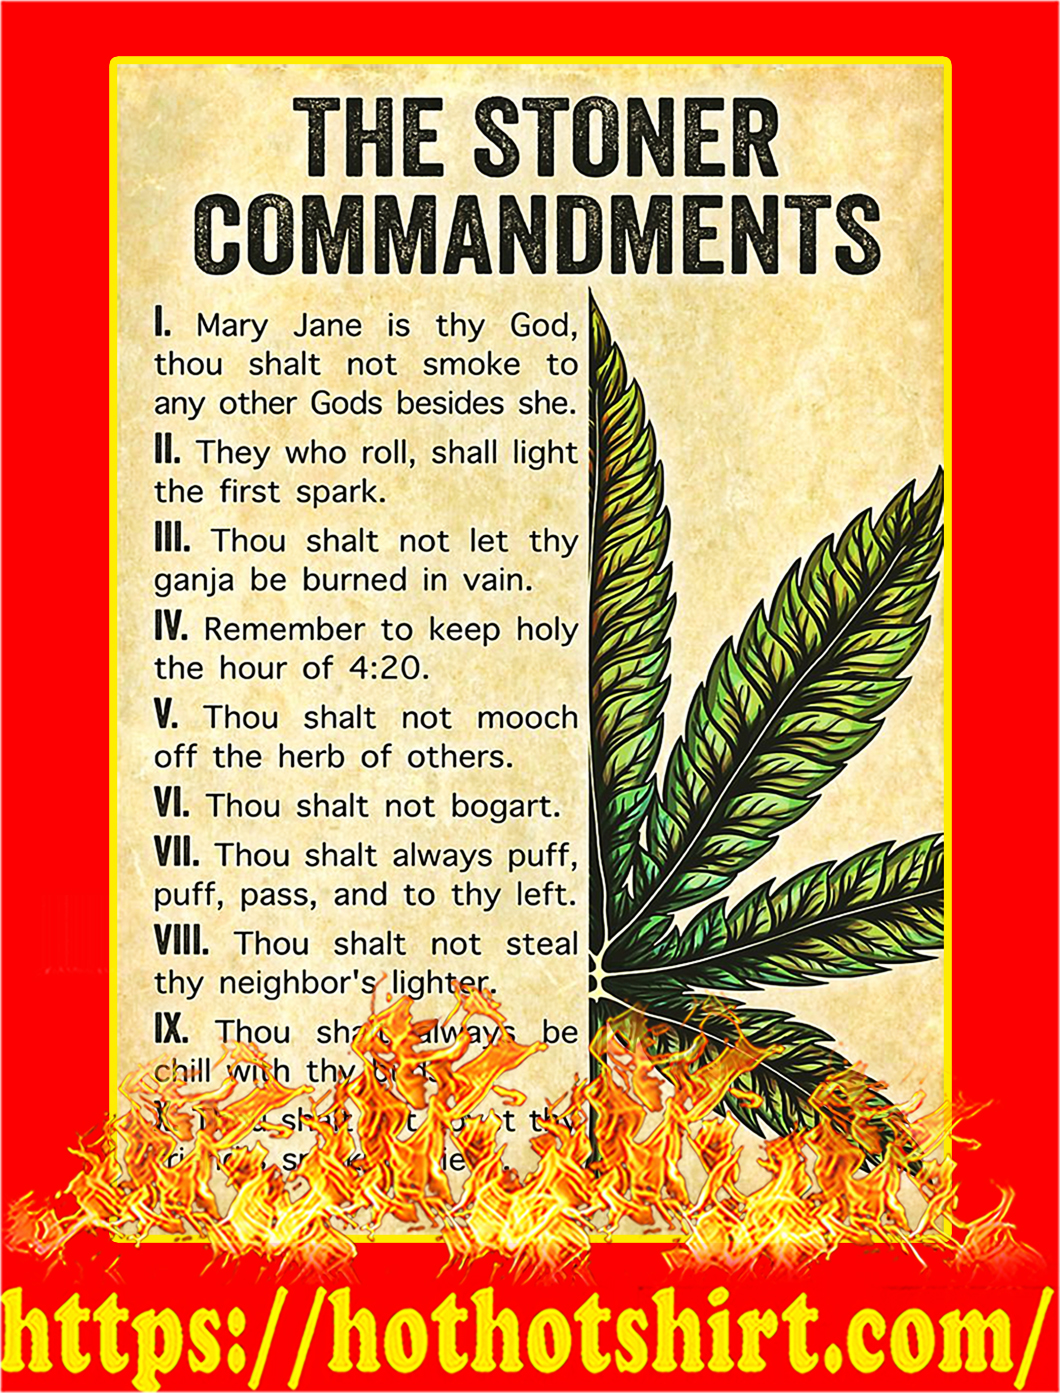 Weed cannabis the stoner commandments poster - A1